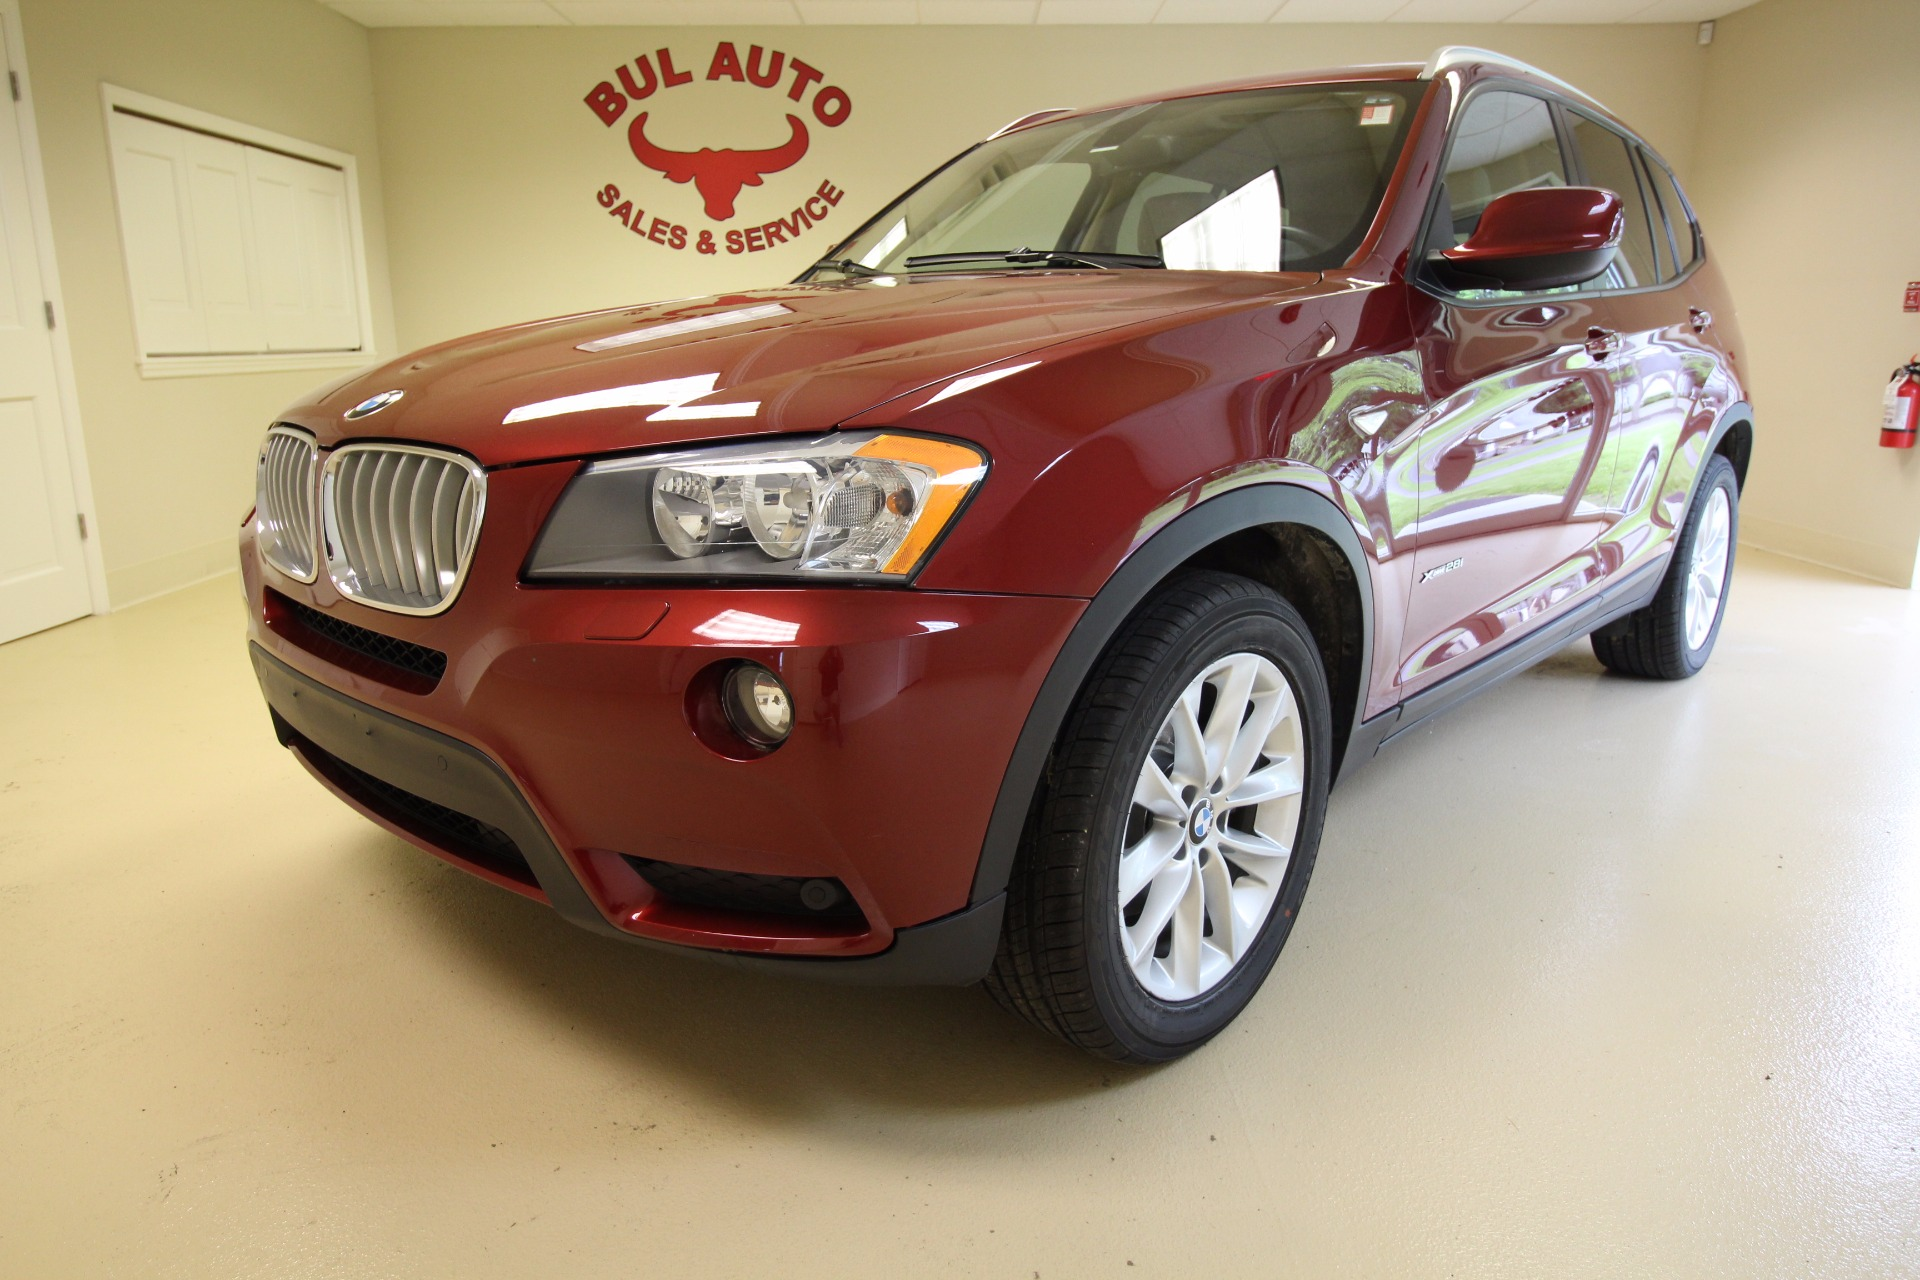 2014 bmw x3 xdrive28i stock 17051 for sale near albany ny ny bmw dealer for sale in albany. Black Bedroom Furniture Sets. Home Design Ideas